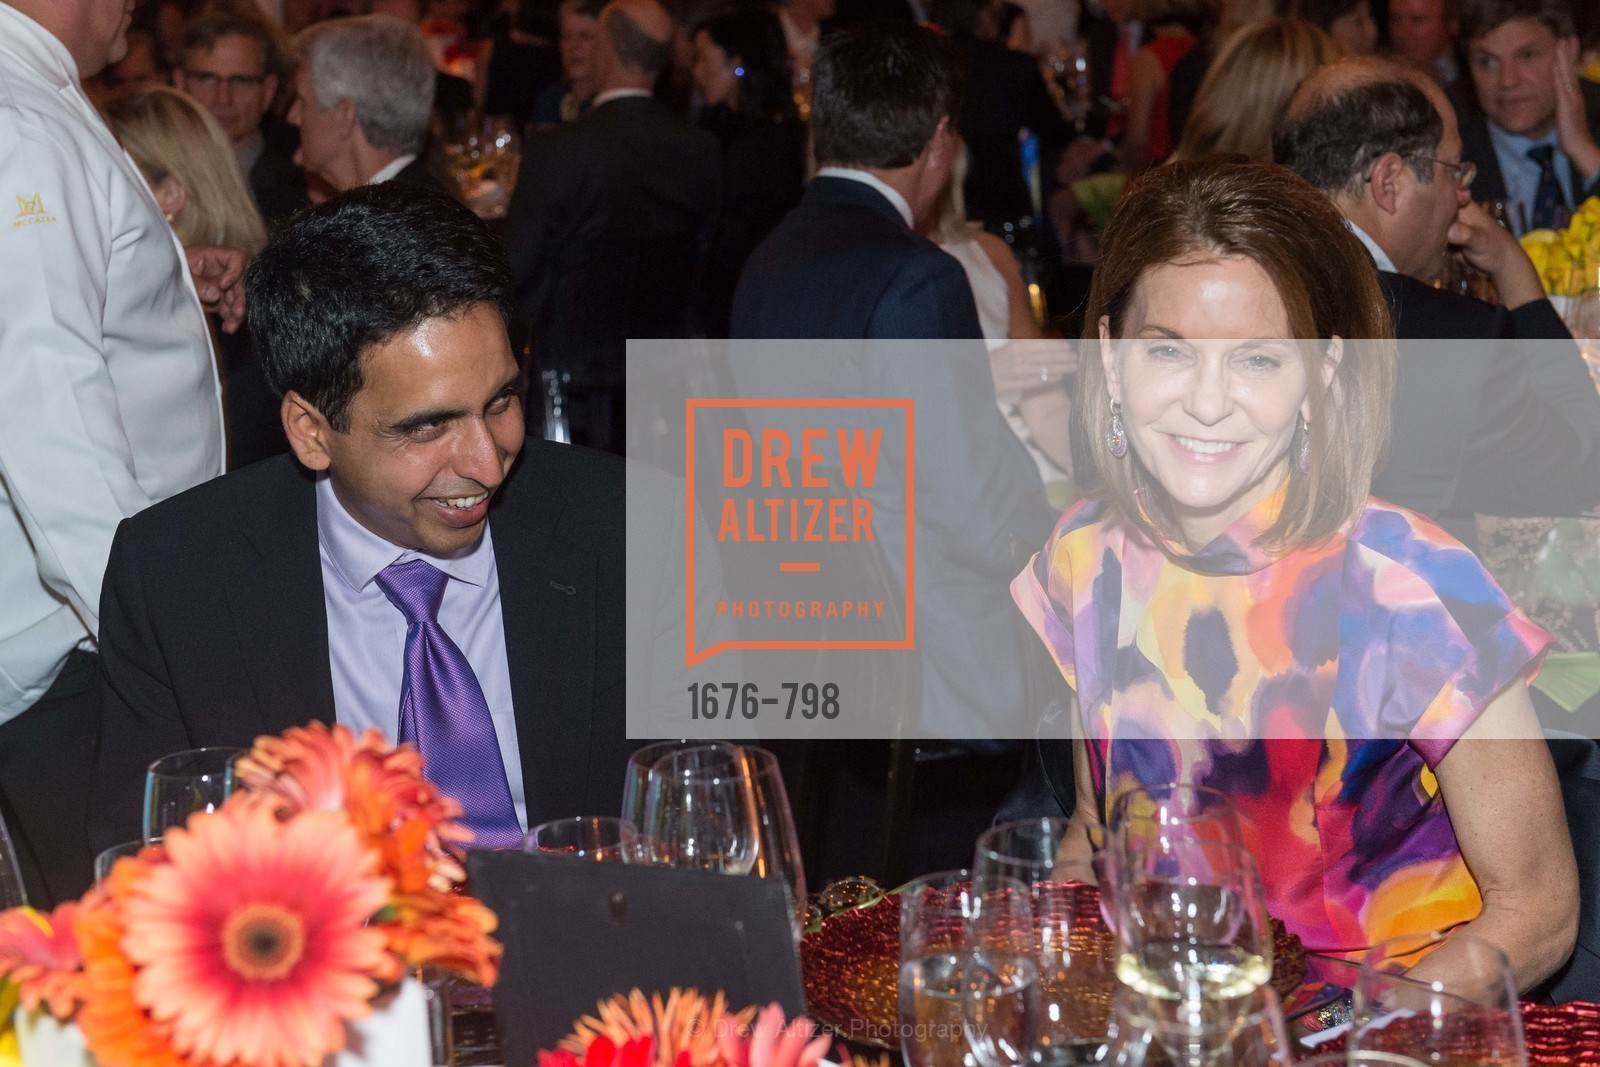 Sal Khan, Penny Coulton, CALIFORNIA ACADEMY OF SCIENCES - Big Bang Gala 2015, US, April 23rd, 2015,Drew Altizer, Drew Altizer Photography, full-service agency, private events, San Francisco photographer, photographer california